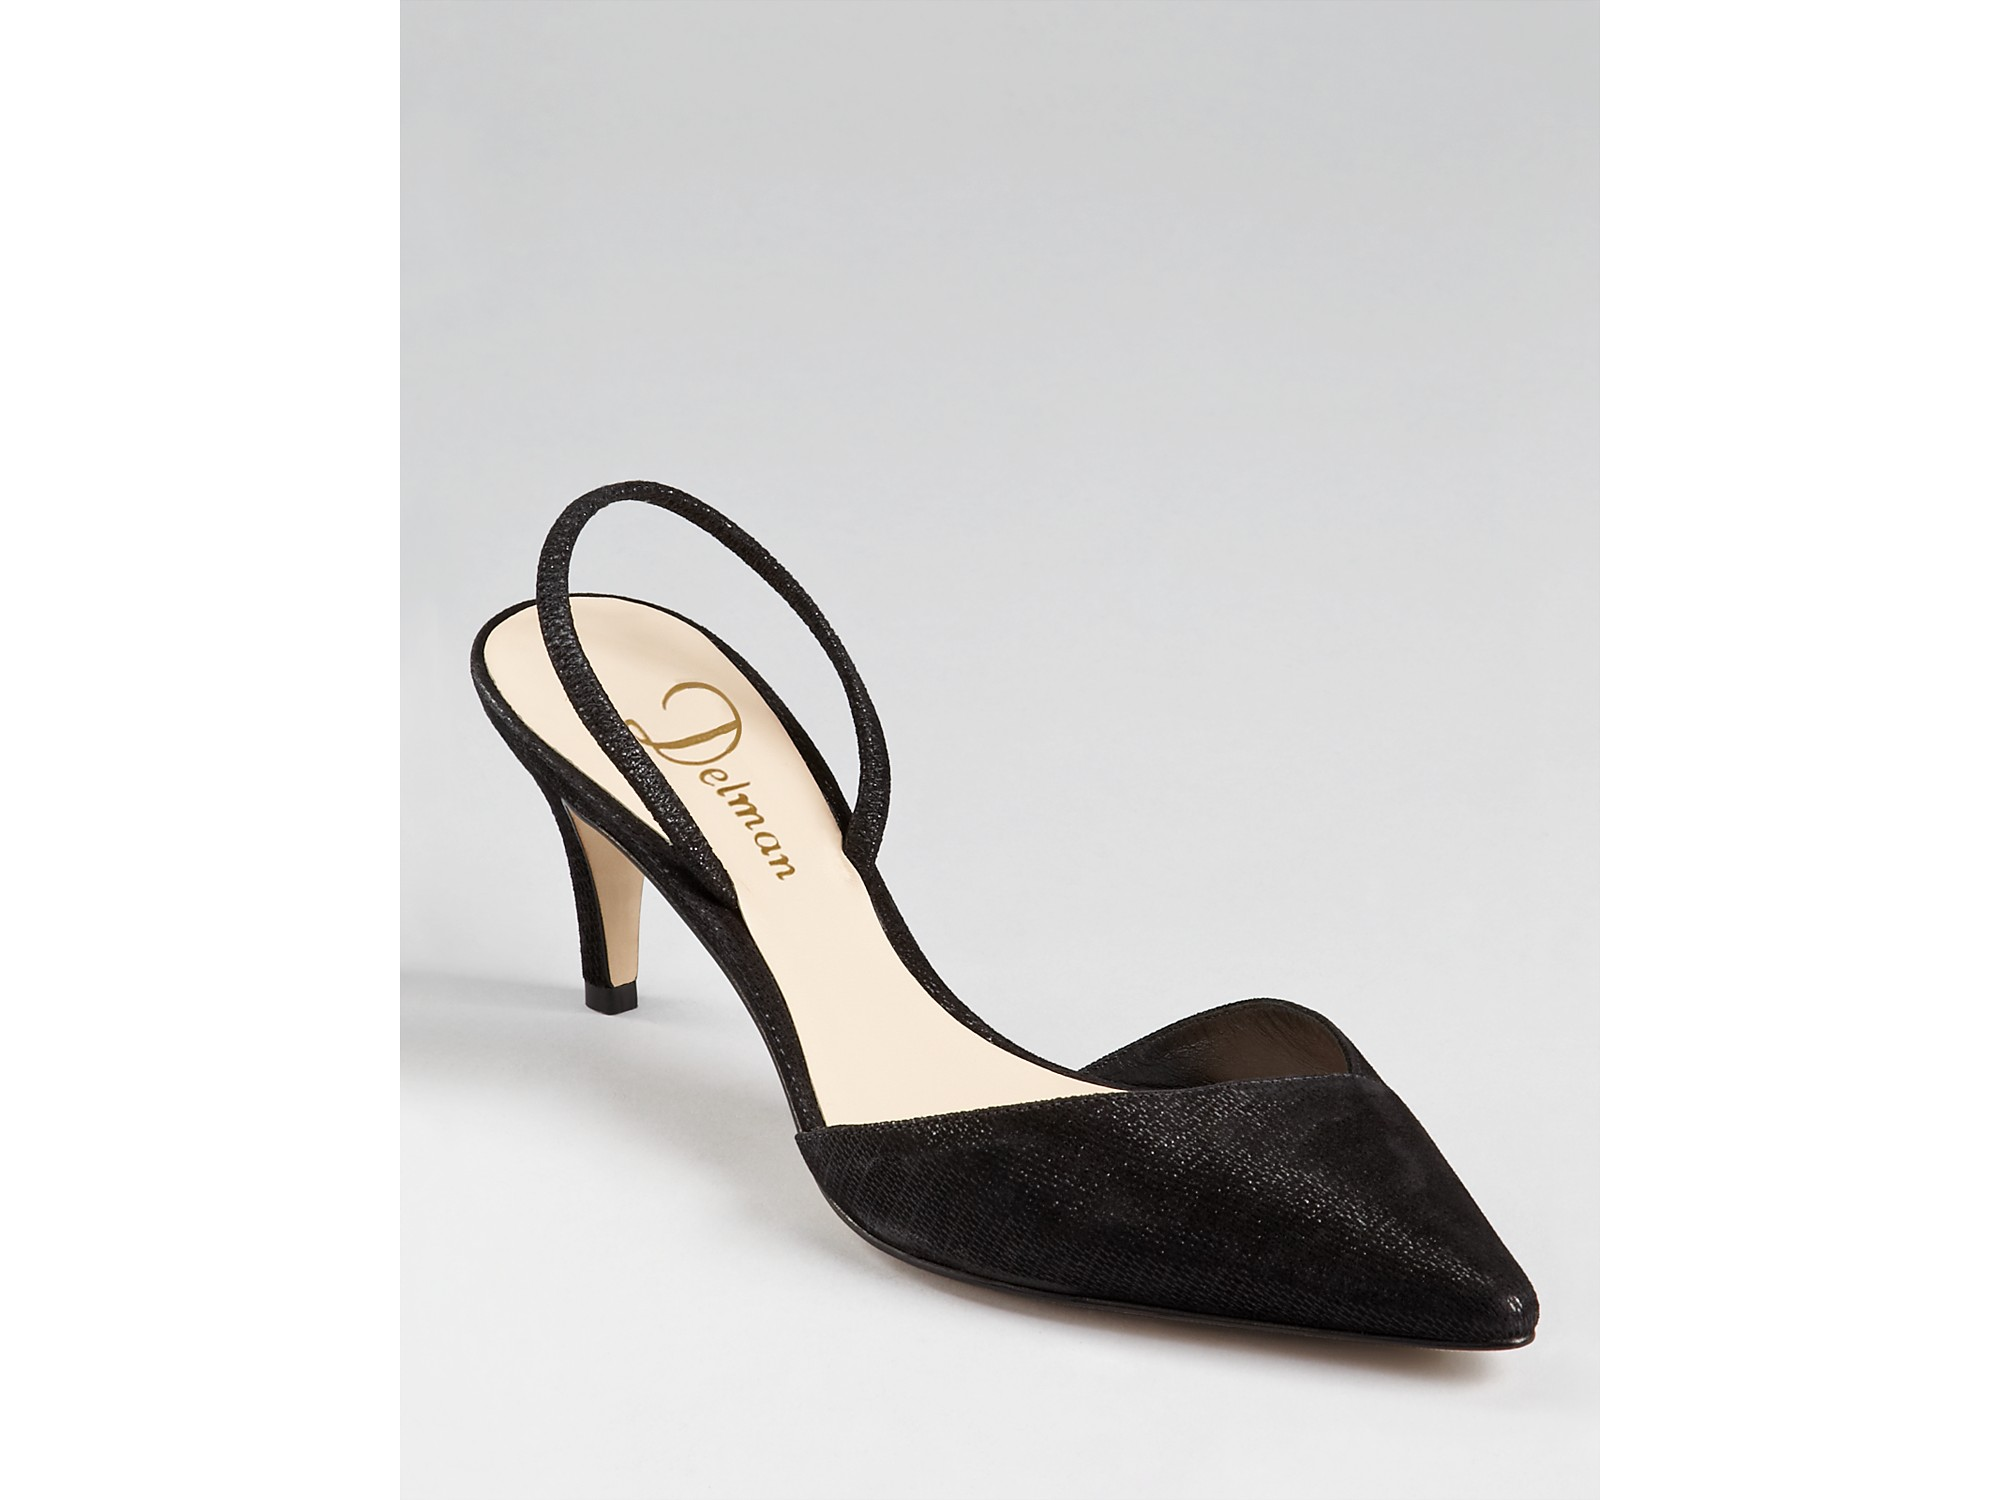 Delman Pumps Laci Sling back Kitten Heel in Black | Lyst